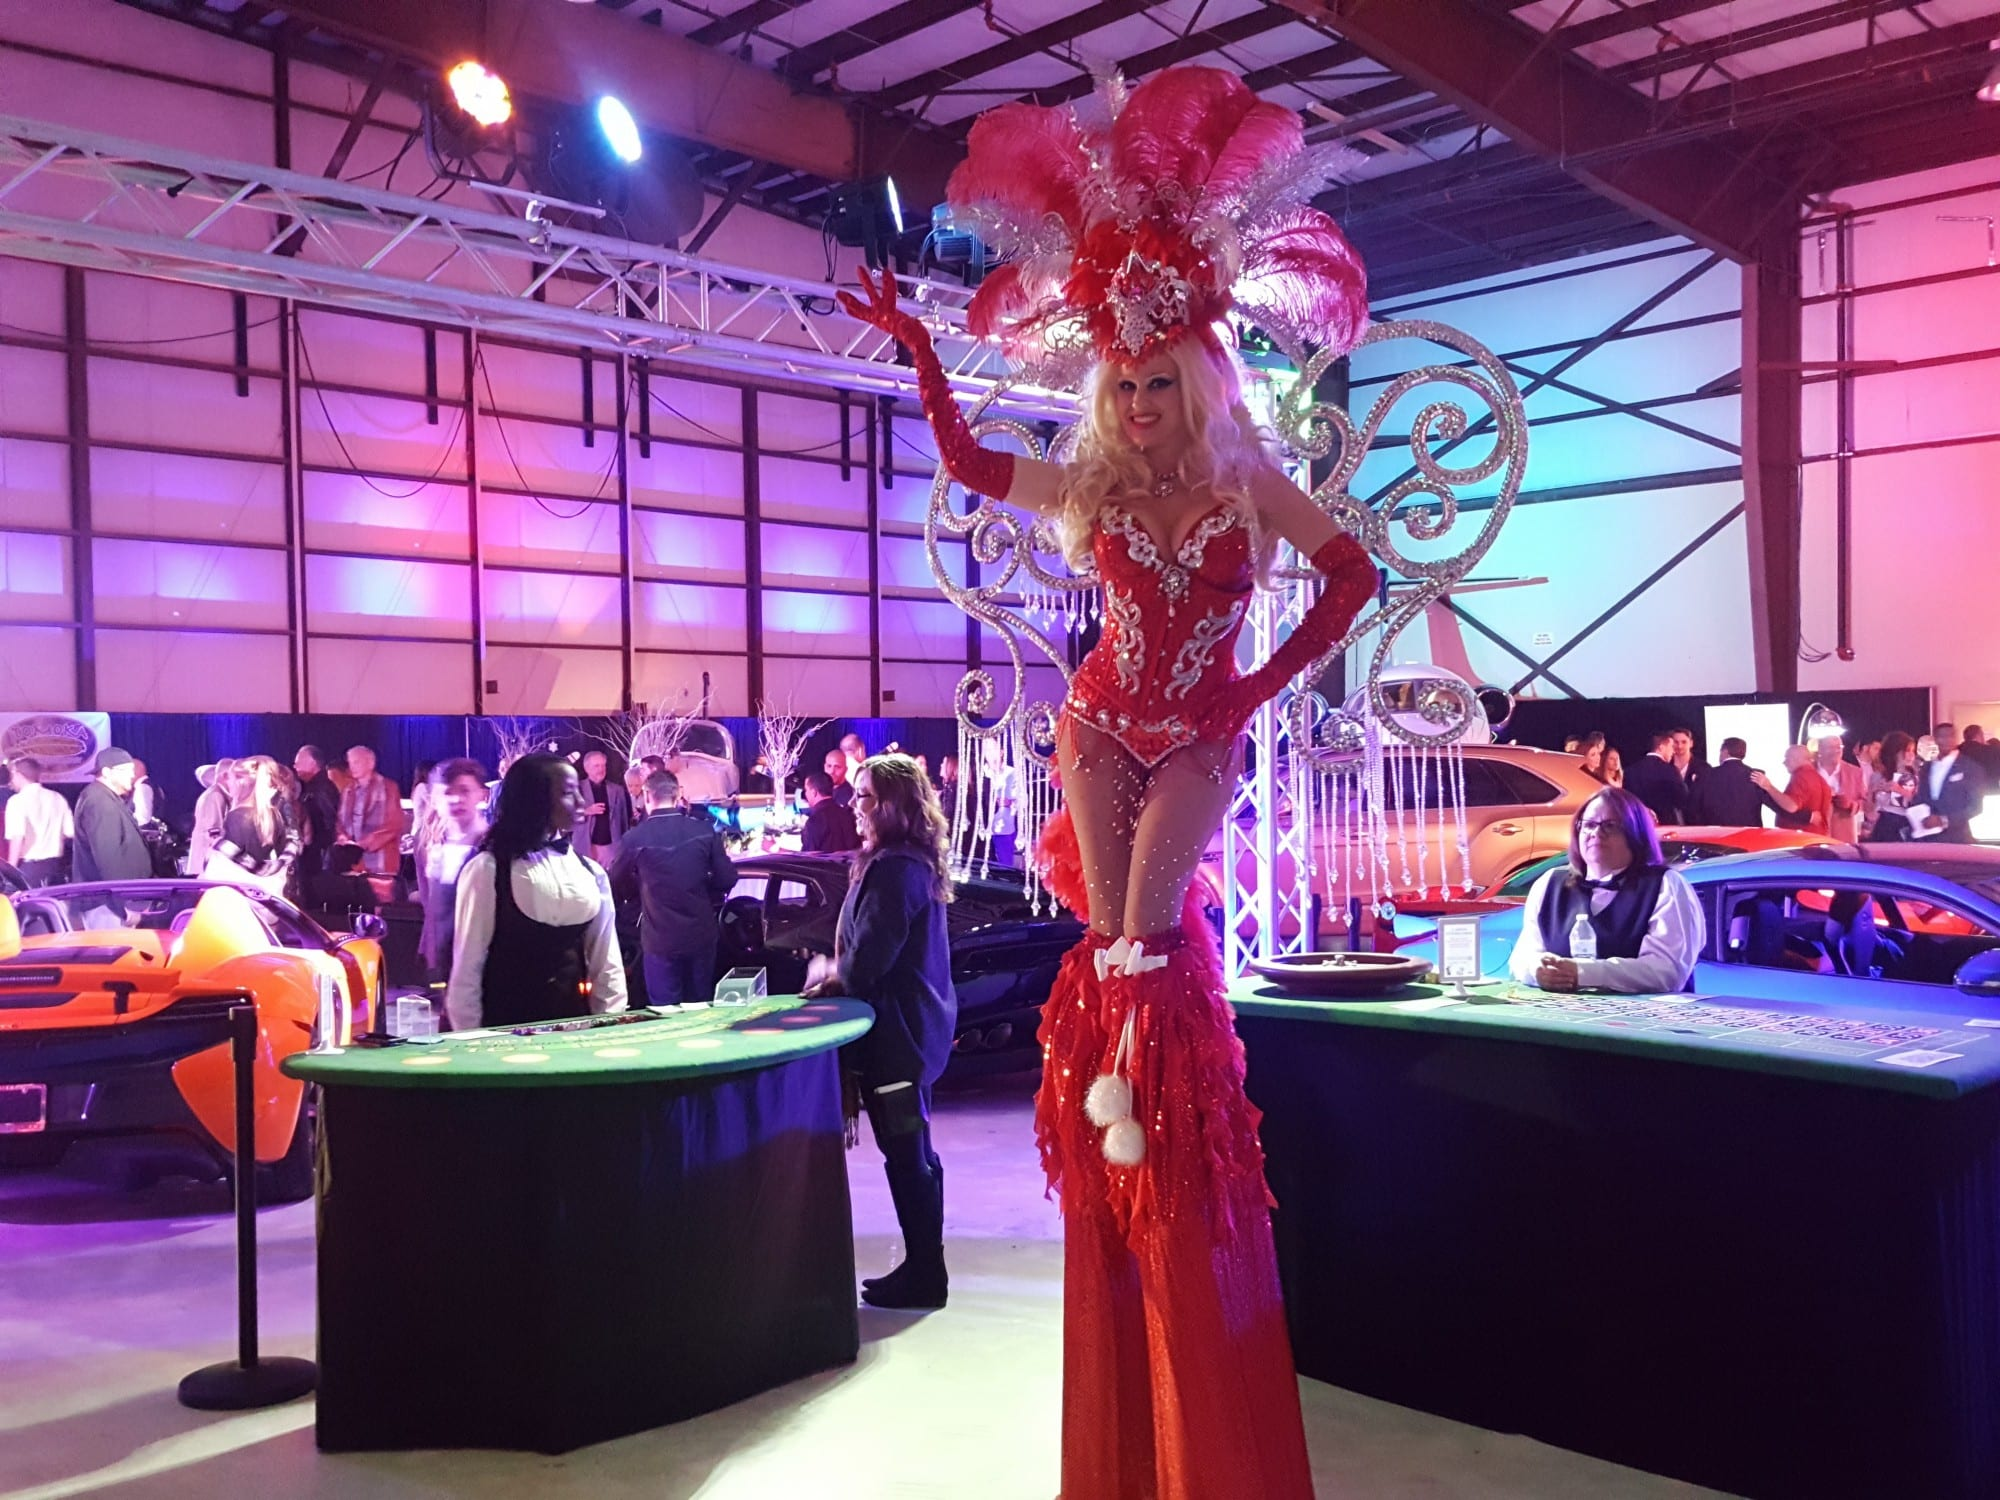 Upgrade Your Event with Themed Parties | Aces Wild Entertainment